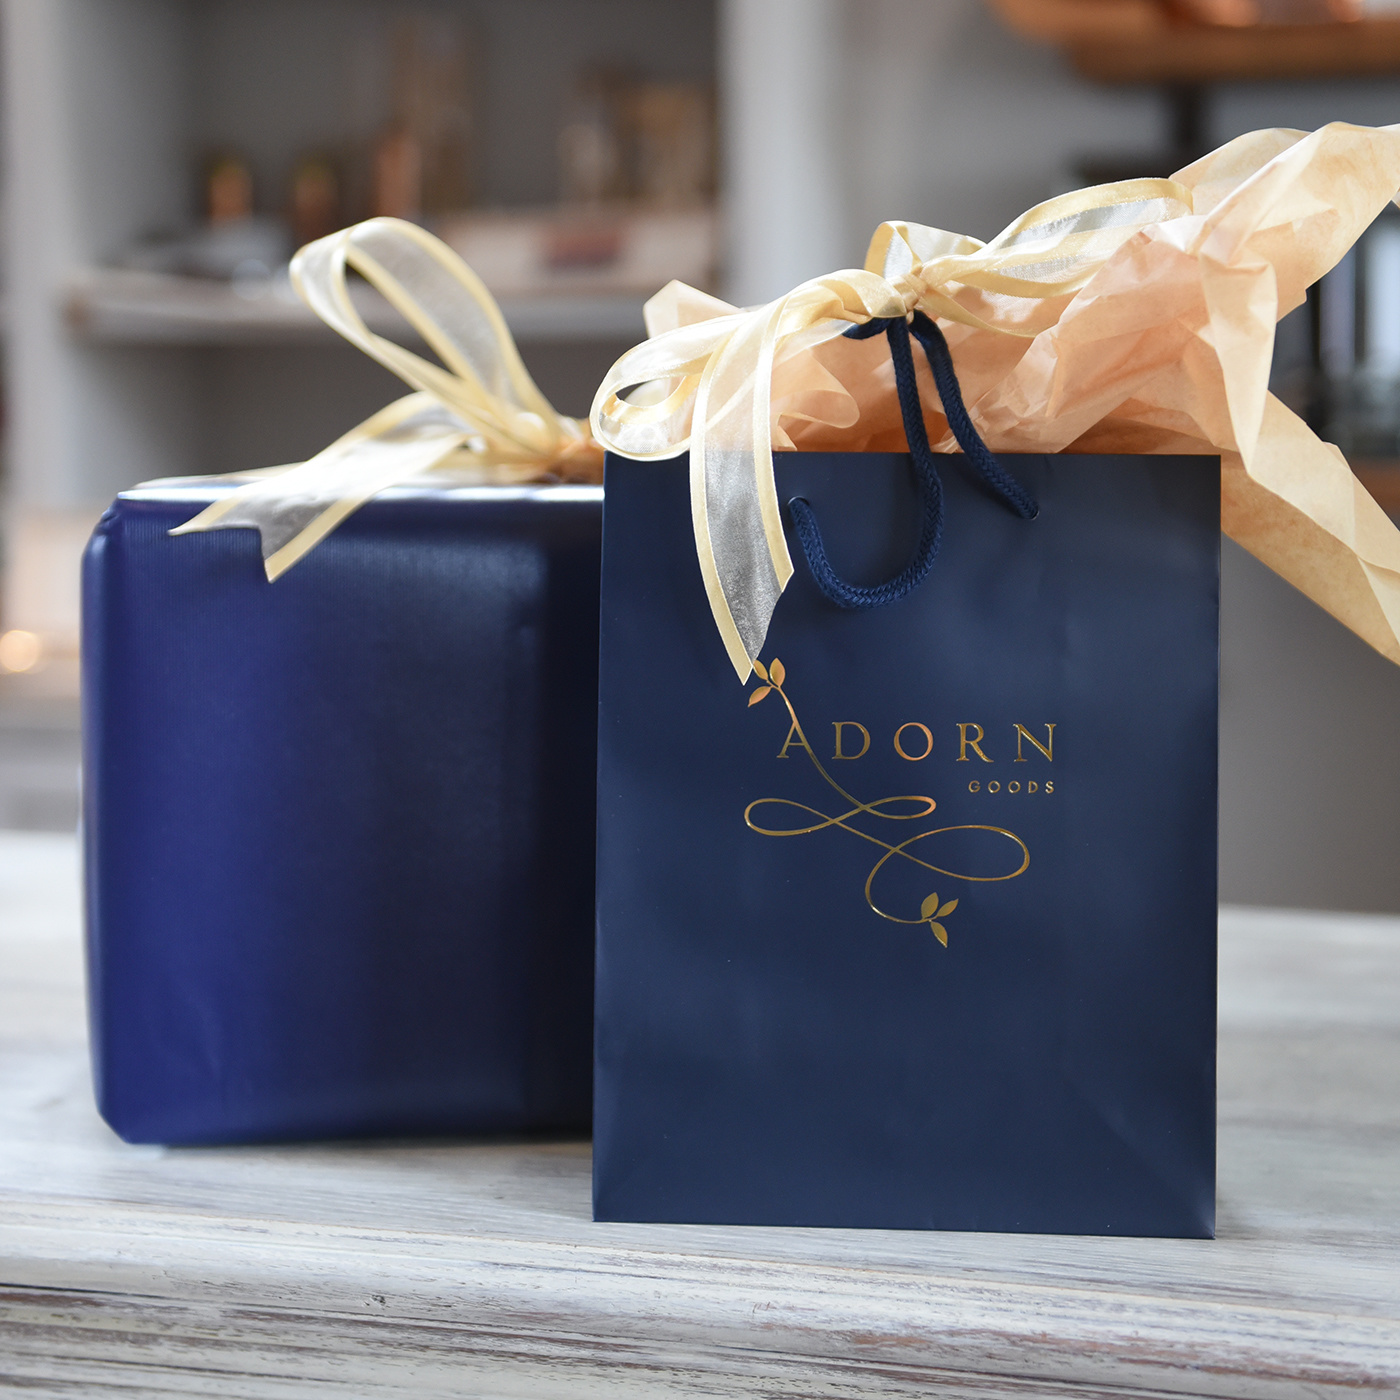 Adorn Goods Gift Wrapping